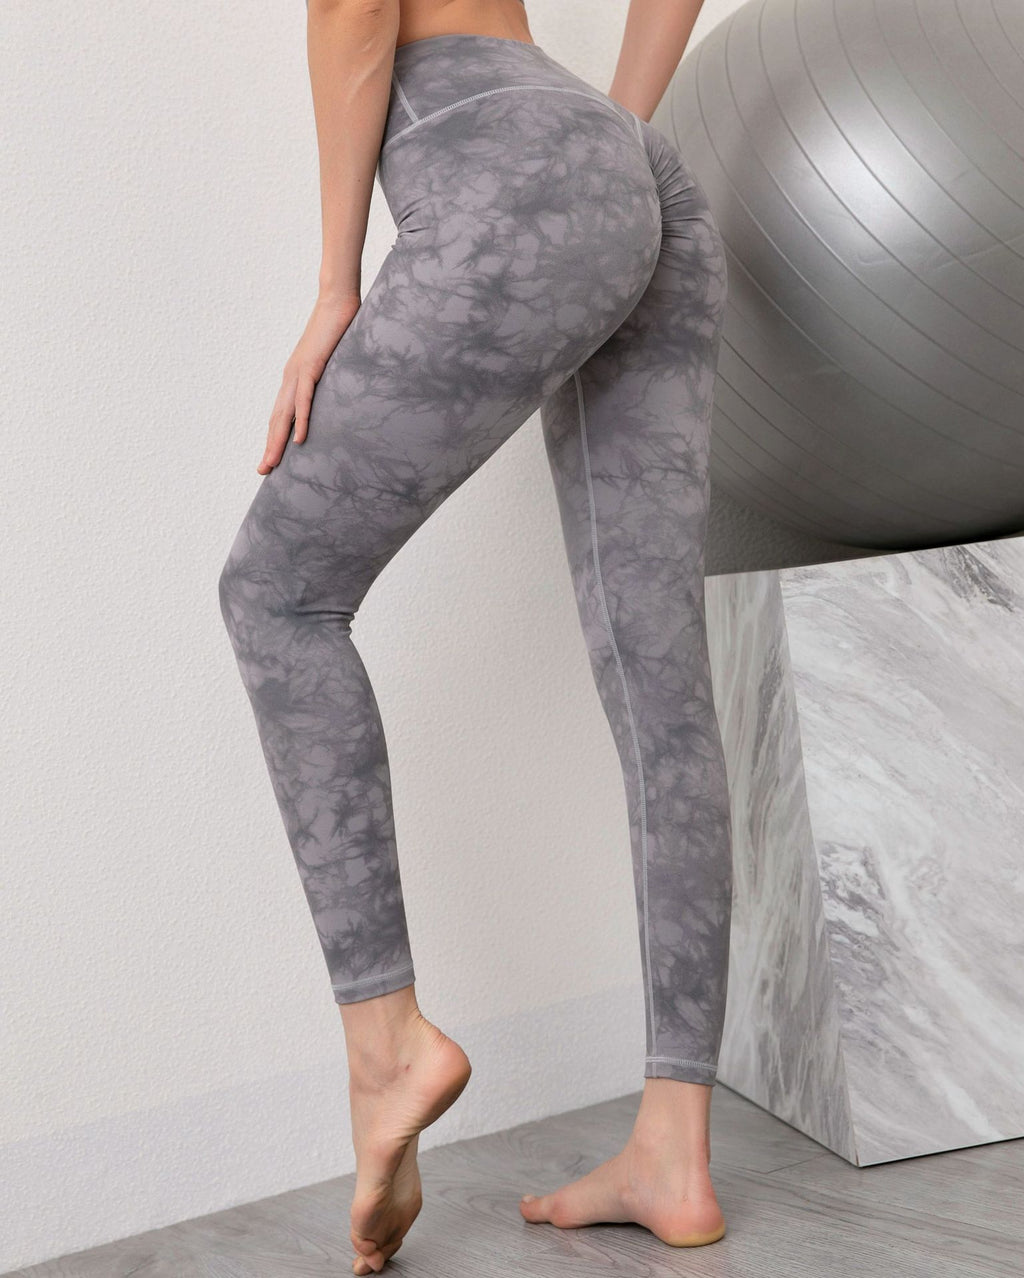 Astoria LUXE CLOUD Scrunch Legging - Light Grey